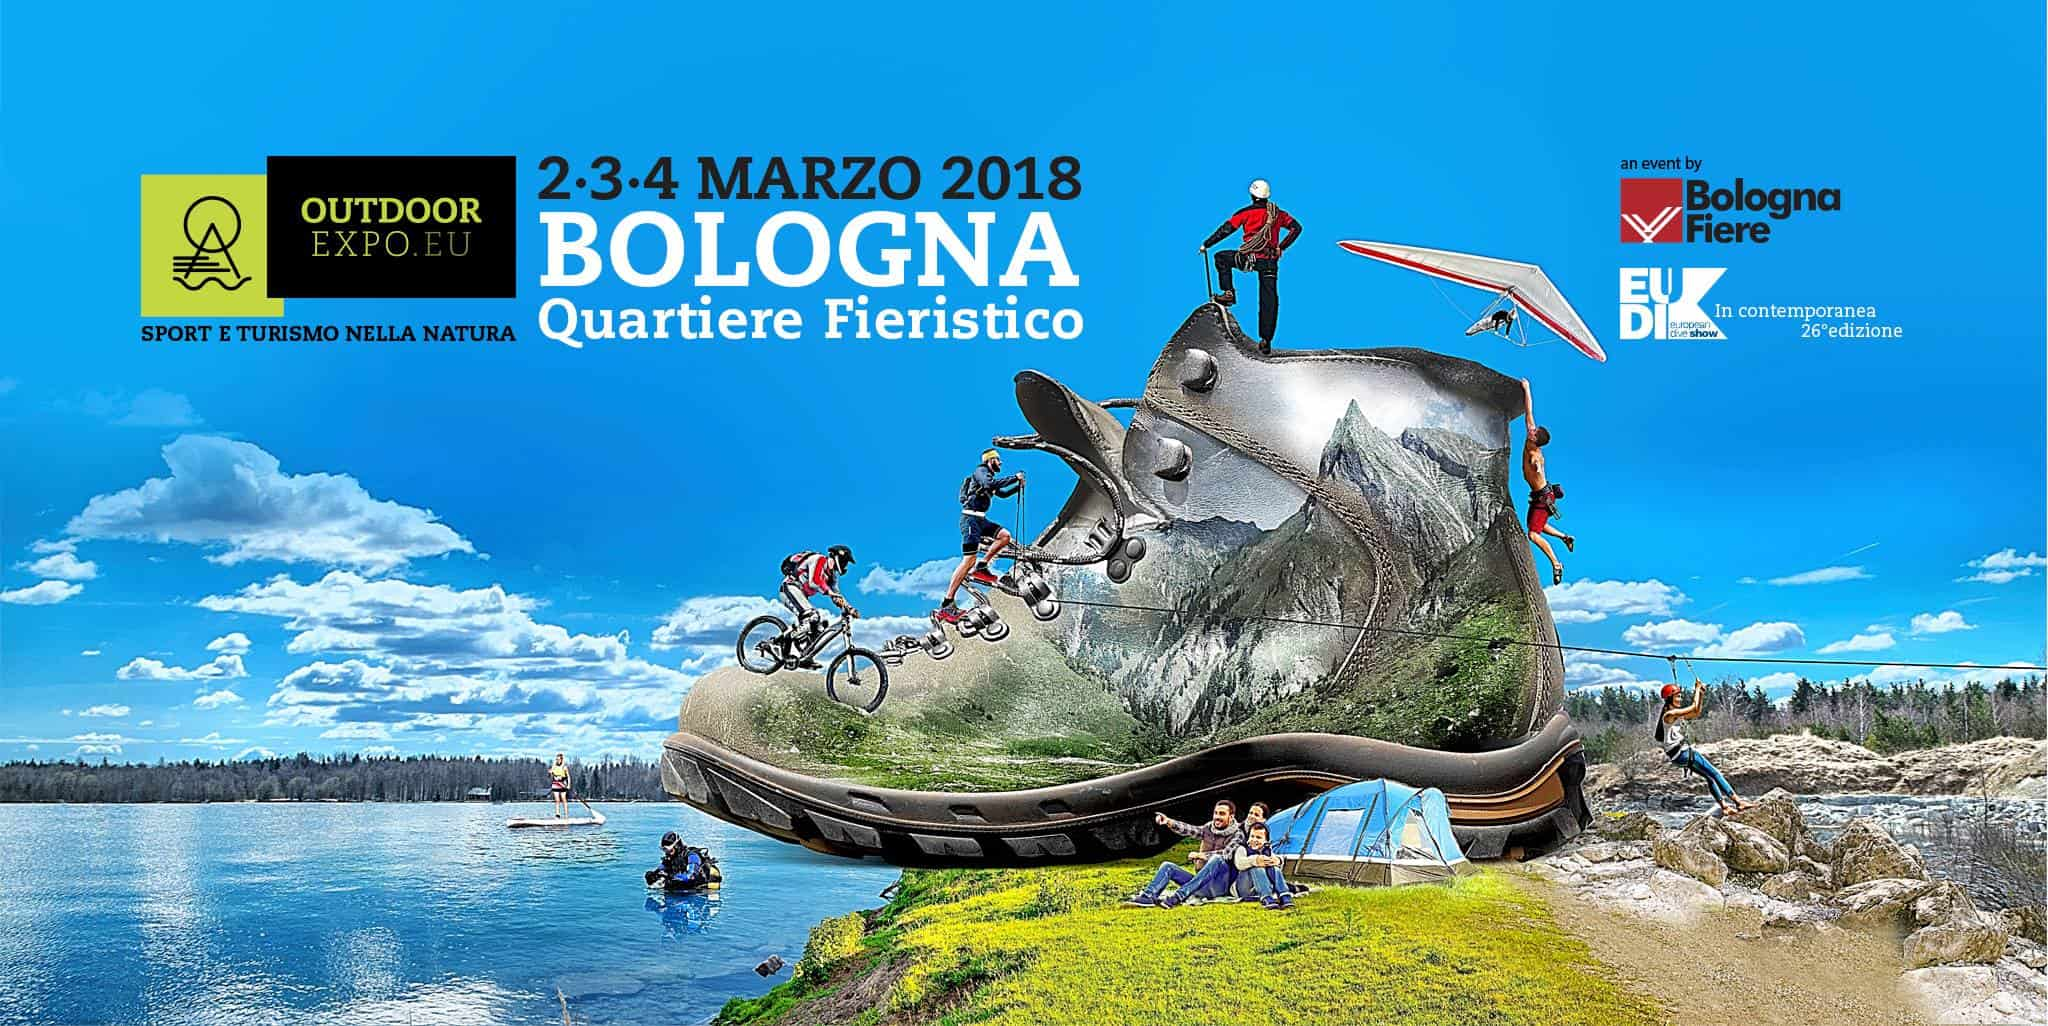 Bologna Fiere Lancia Outdoor Expo